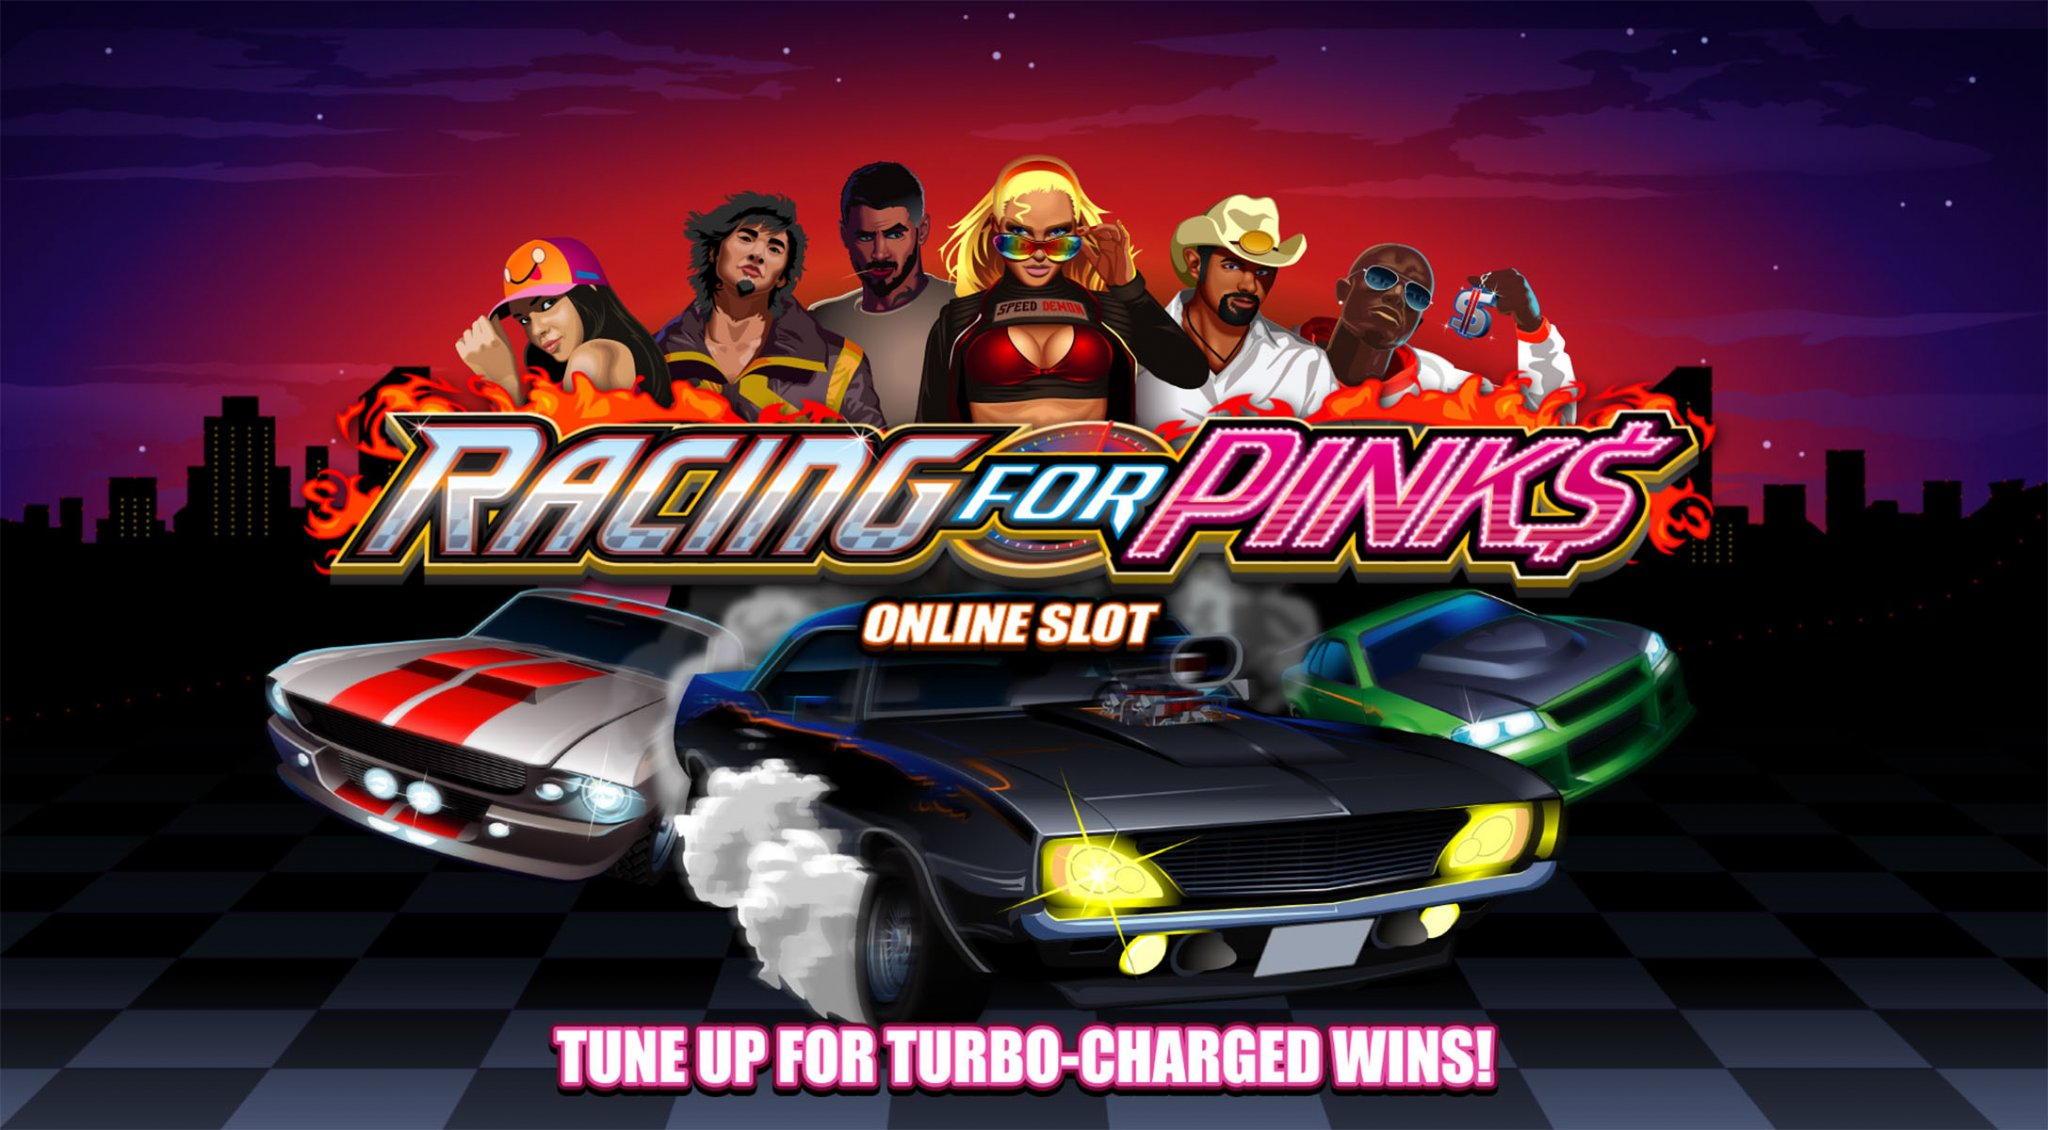 SCR888 Racing for Pinks Slot Game description: